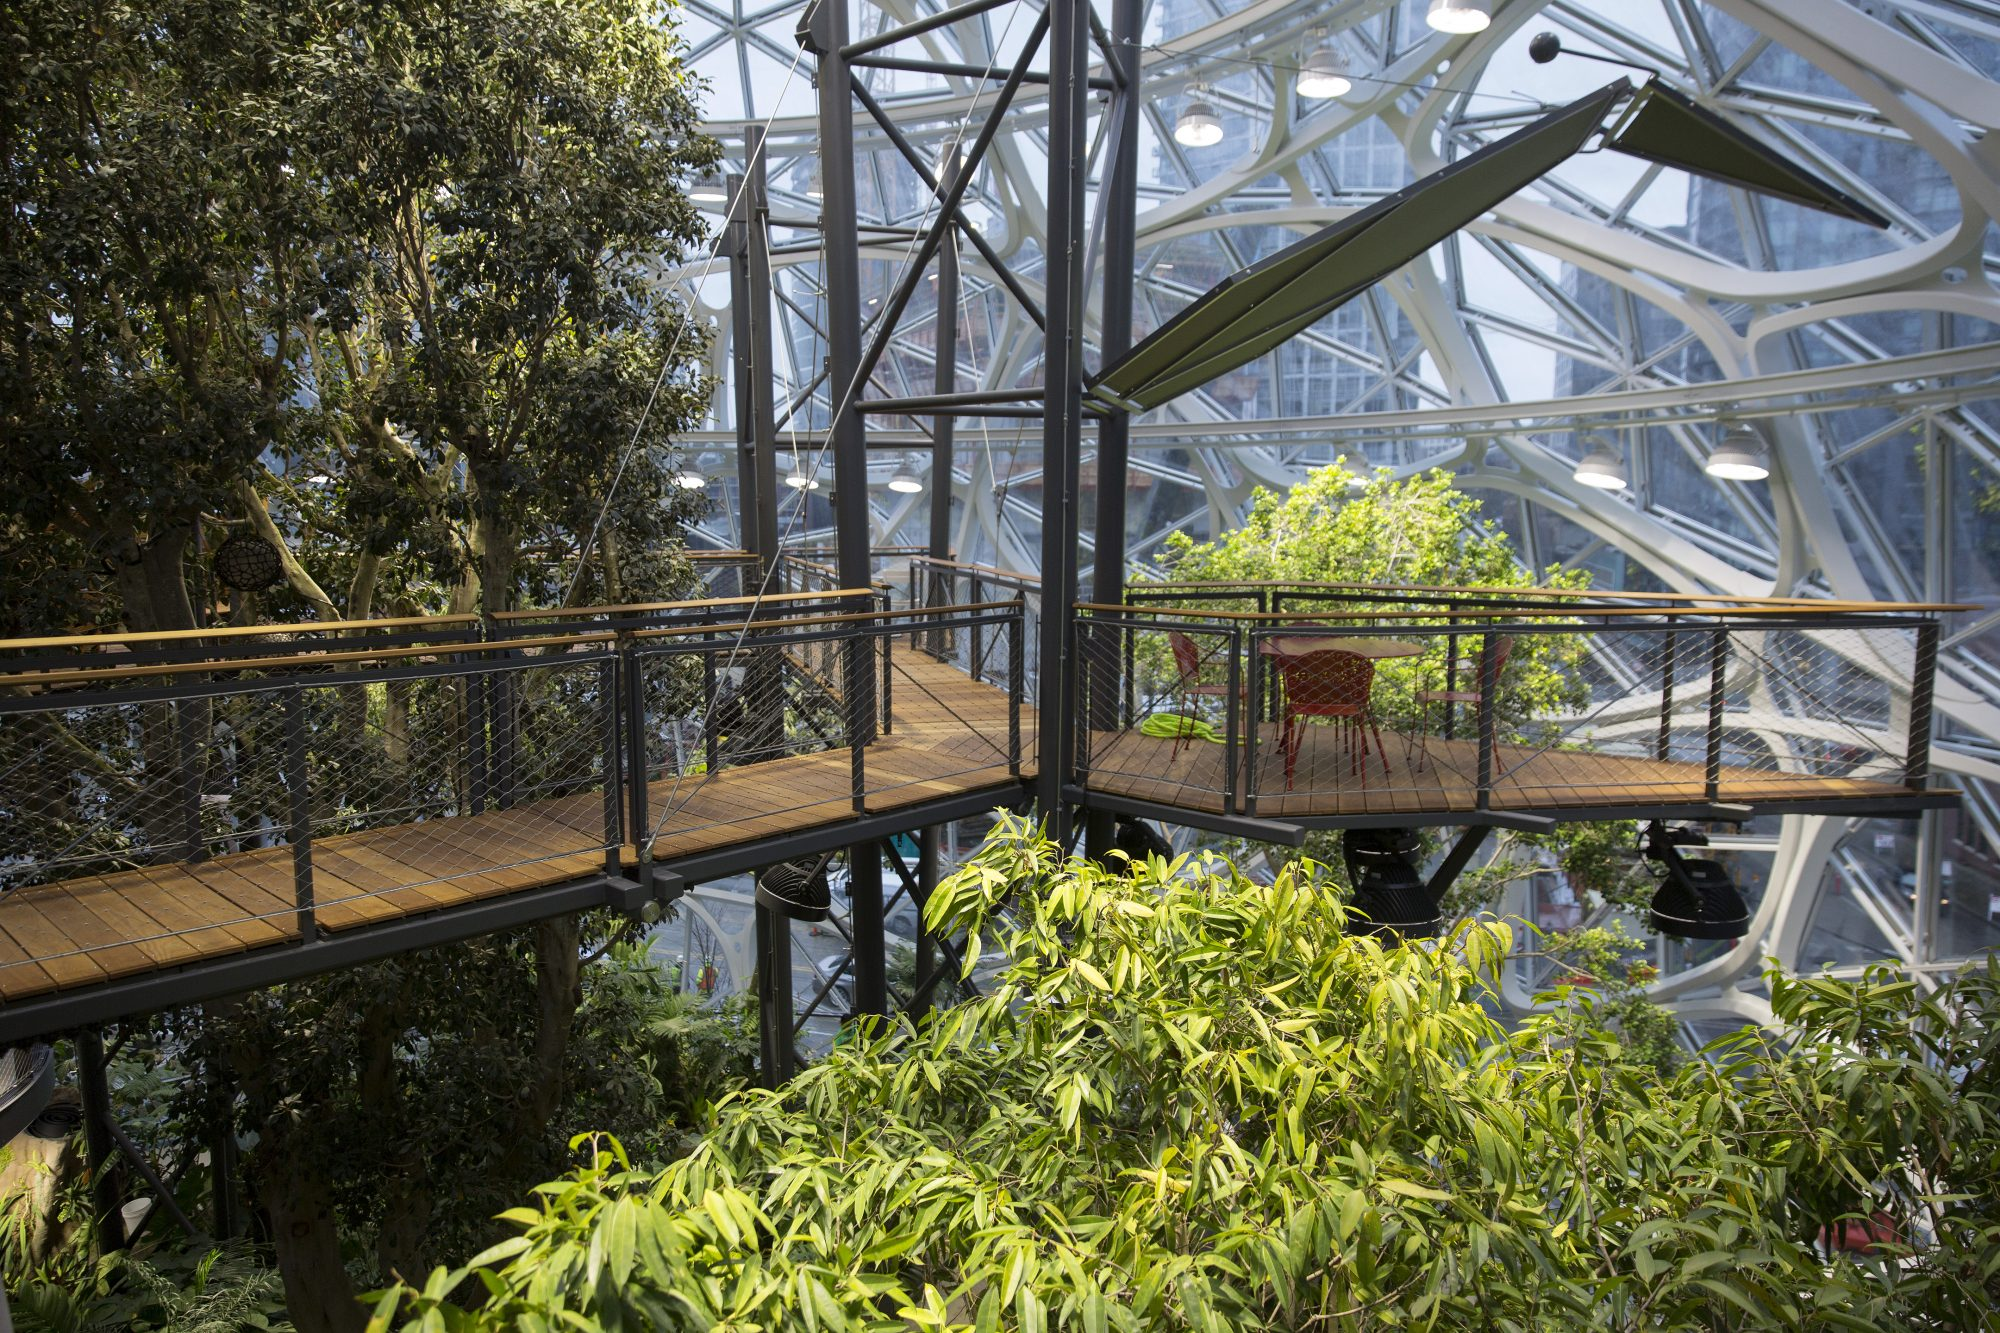 Amazon Just Expanded Its HQ in Seattle. Now It Has a Rainforest